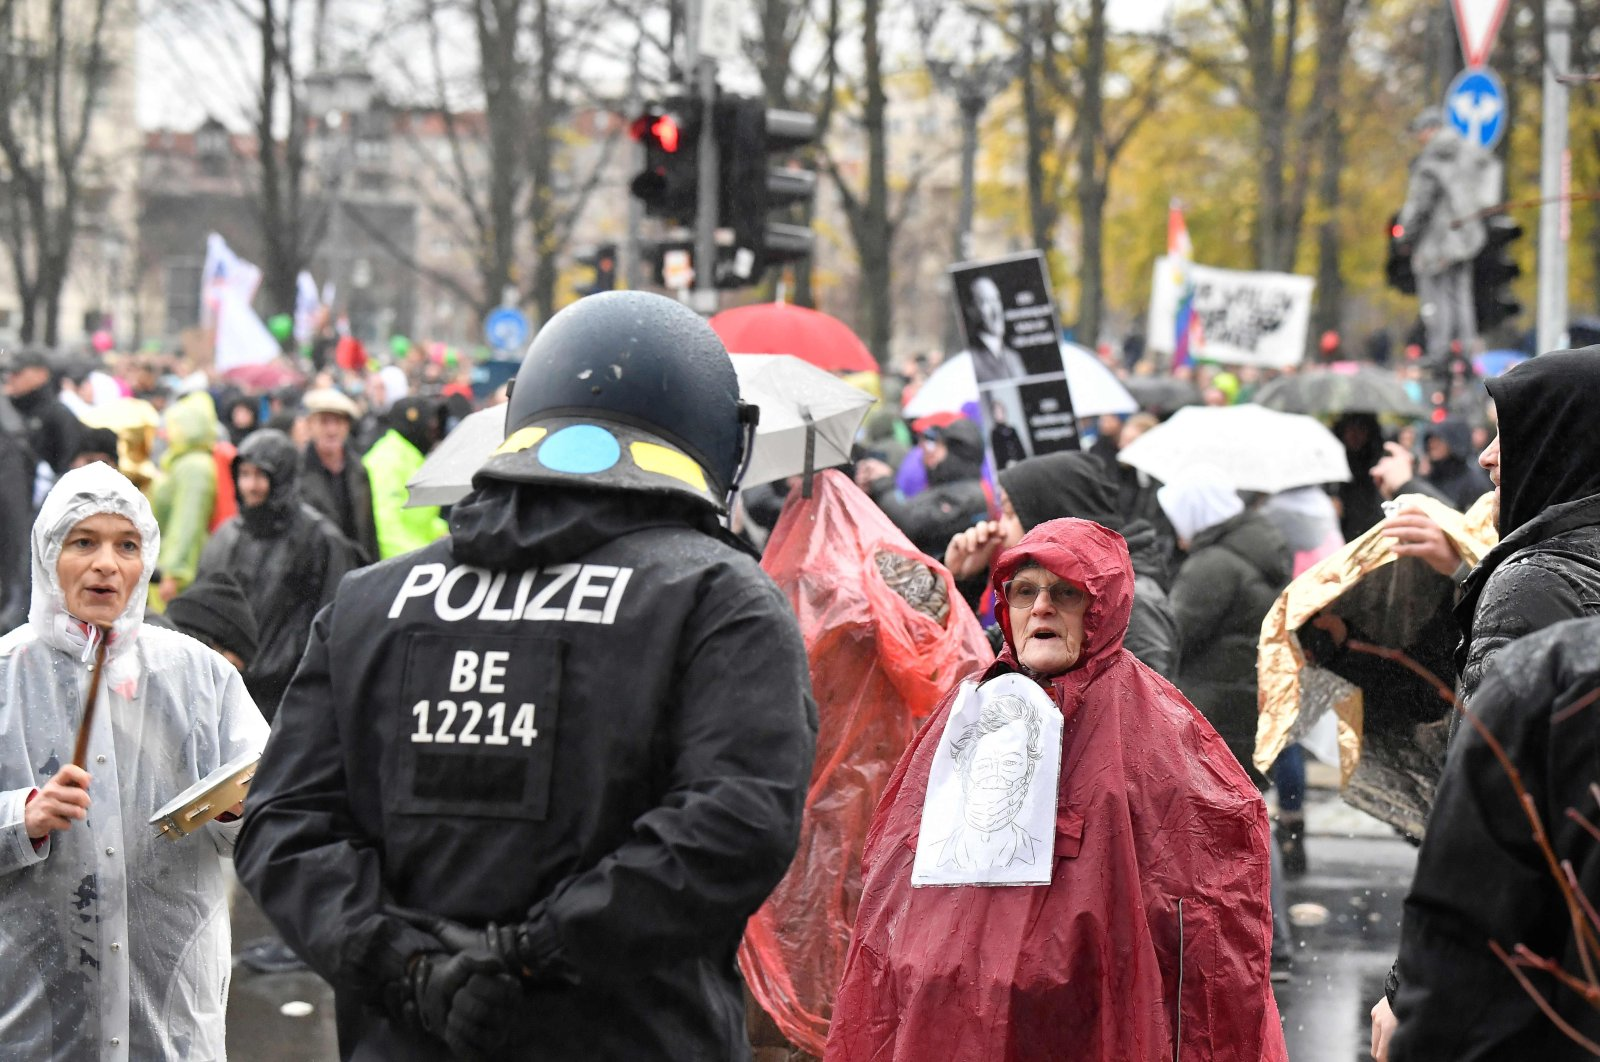 A police officer talks with protesters demonstrating against measures imposed by the German government to limit the spread of the coronavirus, close to the Reichstag building housing the Bundestag (the lower house of parliament) in Berlin, Germany, Nov. 18, 2020. (AFP Photo)